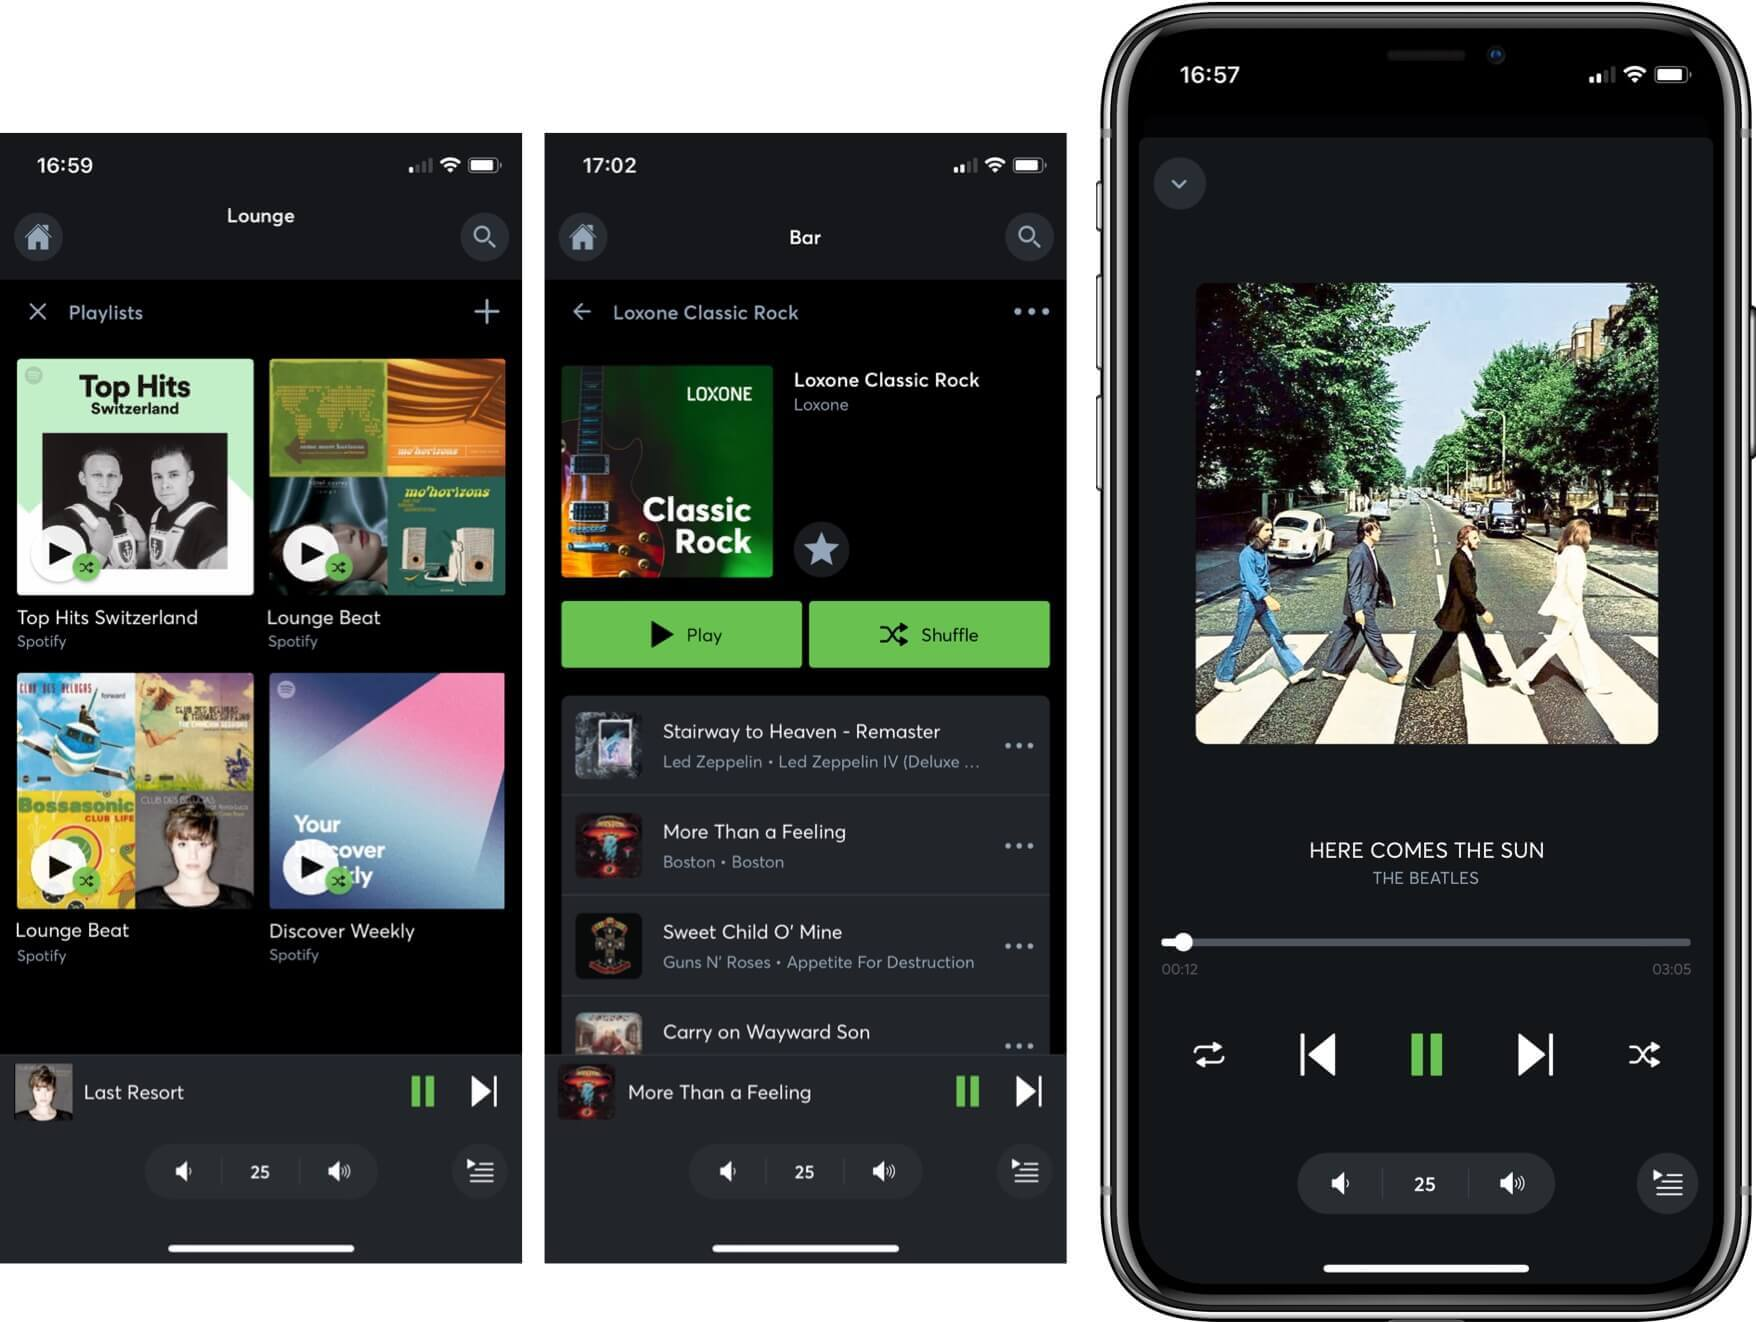 Smart home app control of music